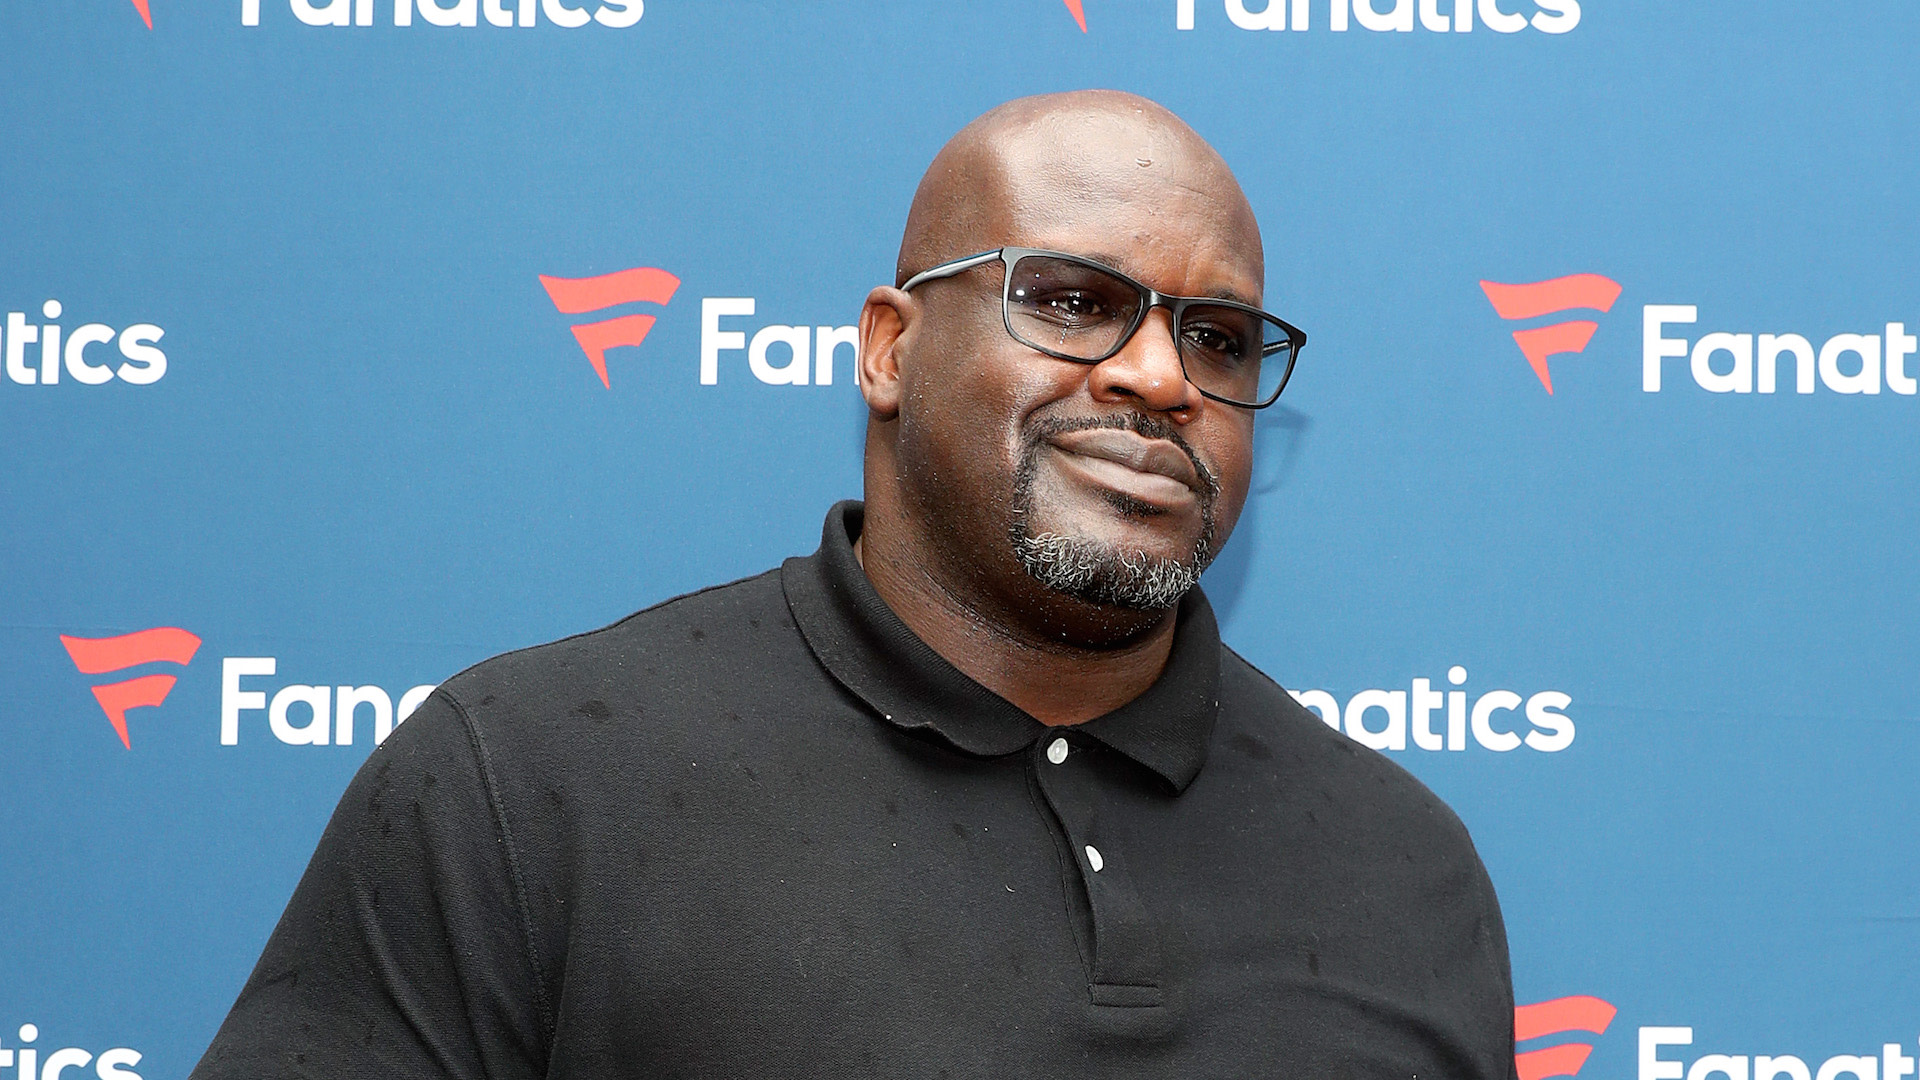 Shaq Responds to 'Tiger King' Criticism: 'I Was Just a Visitor. Not My Friend'